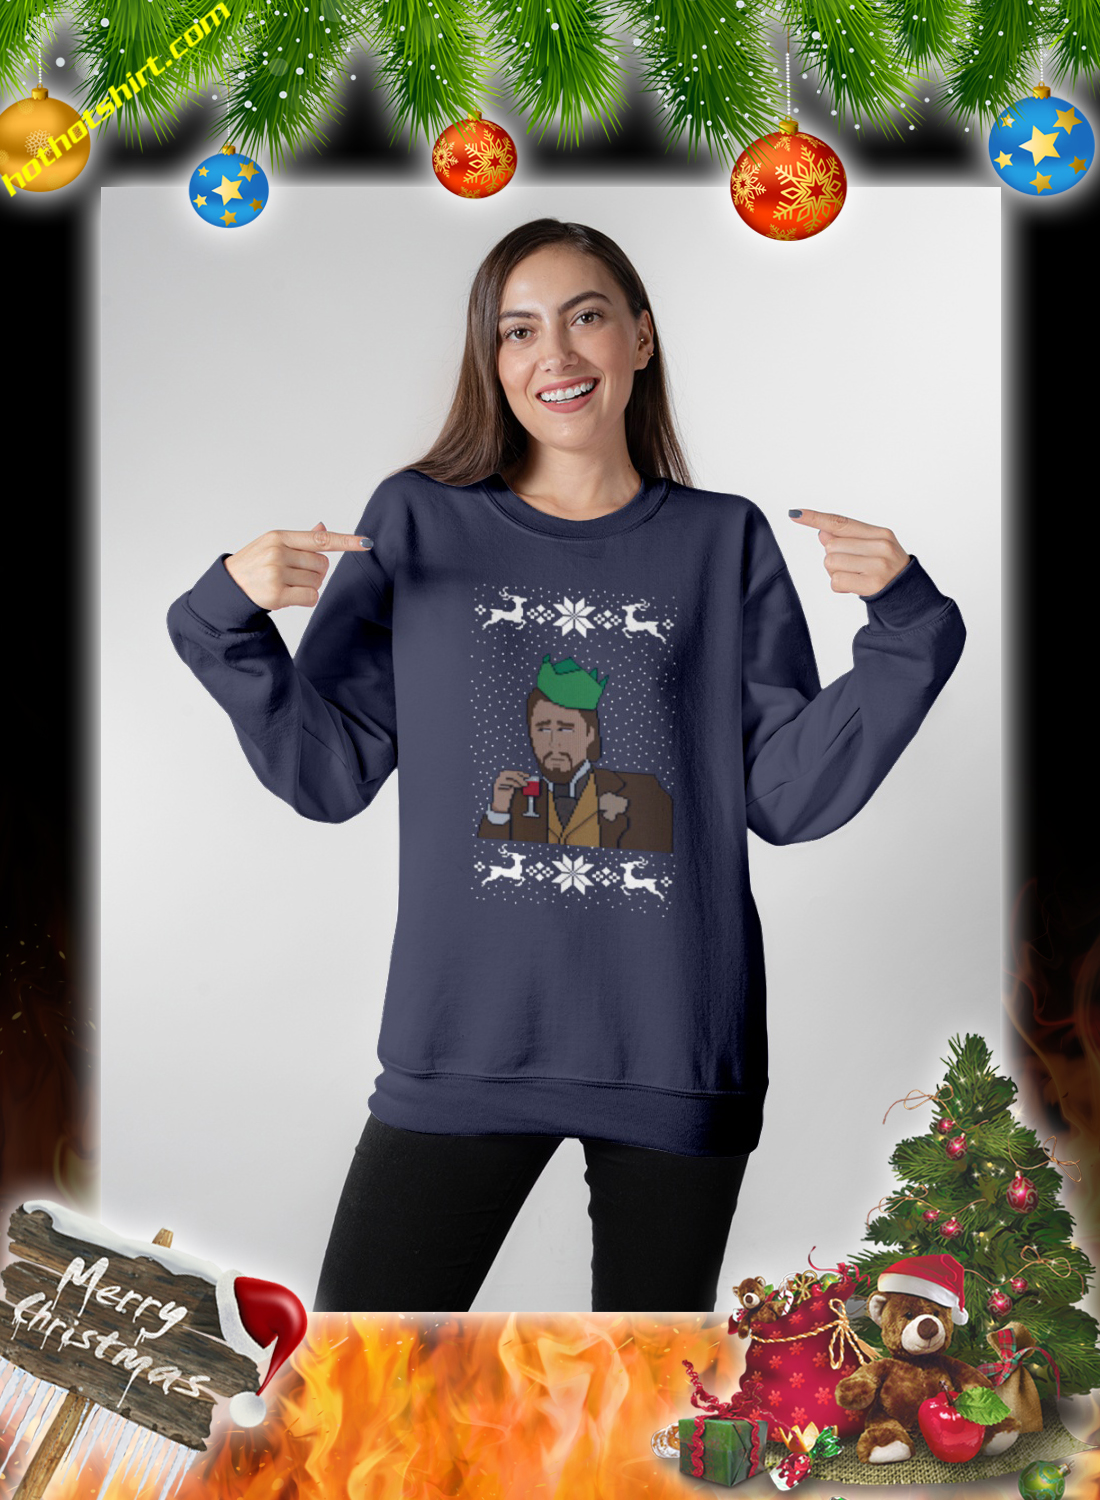 DiCaprio christmas jumper and sweatshirt 1